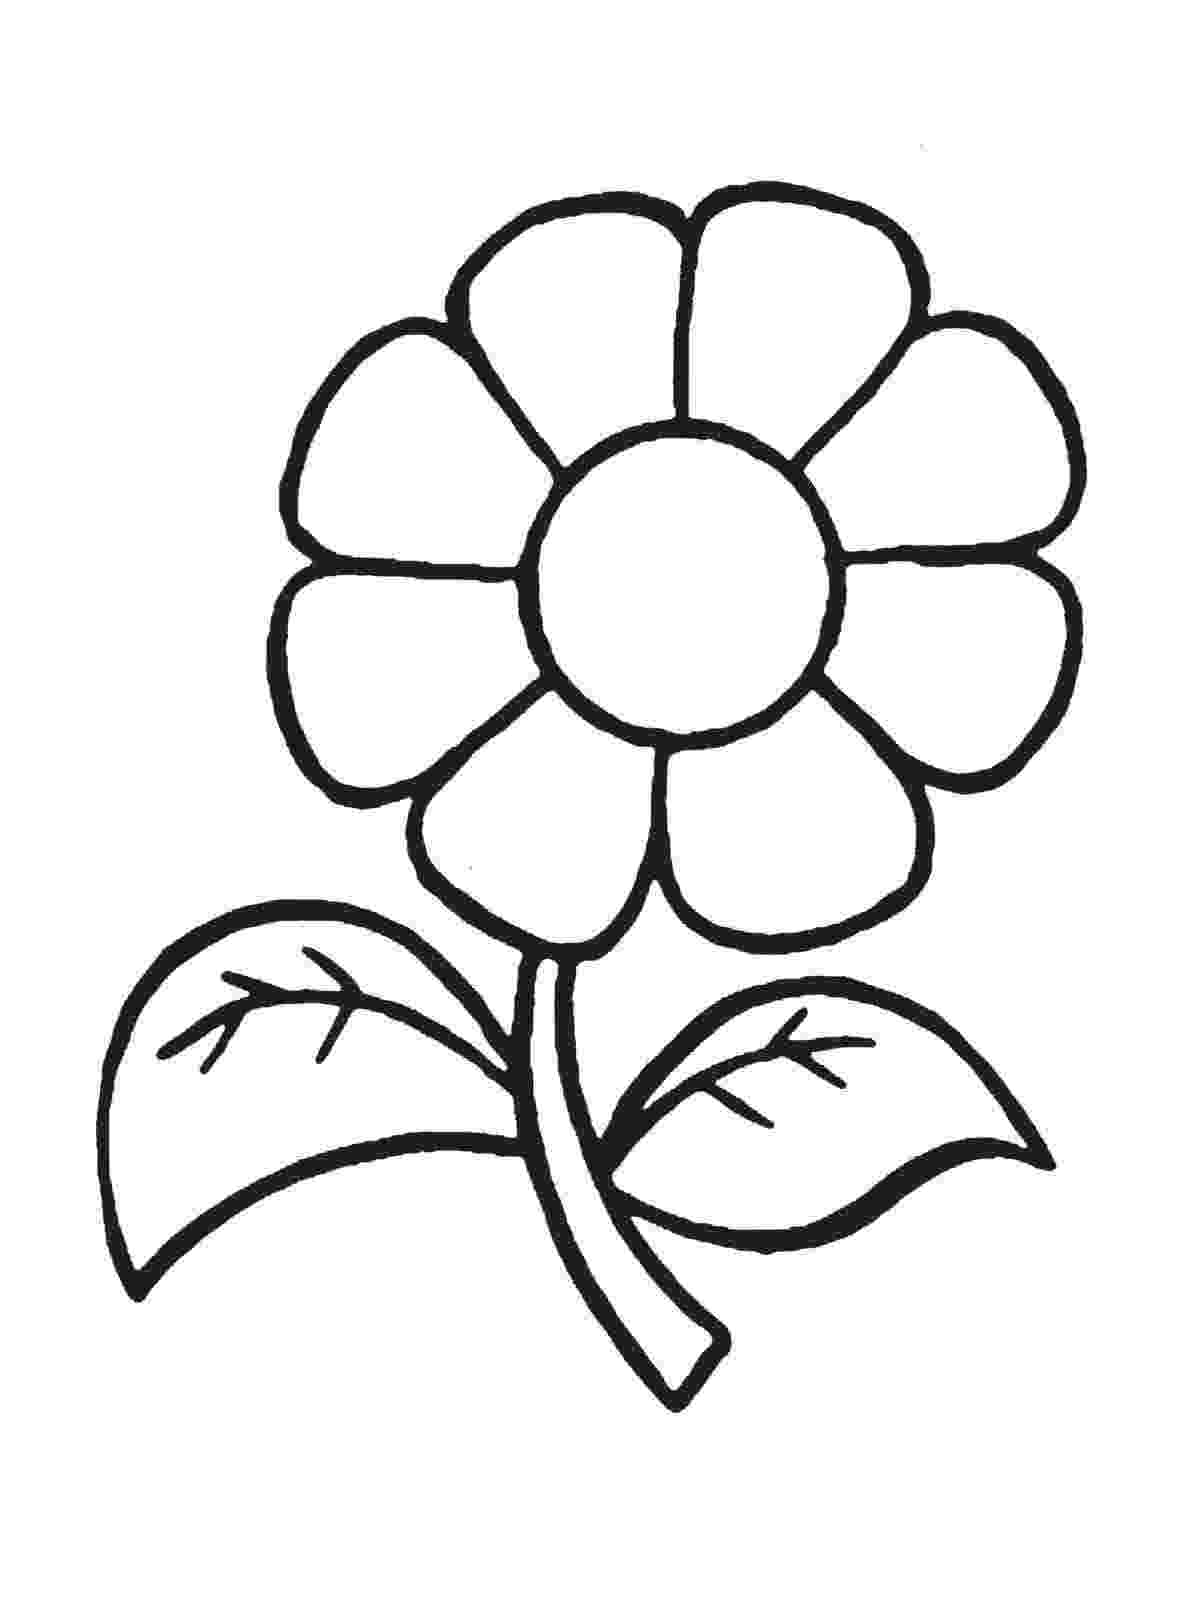 colouring pages for two year olds coloring pages for 2 to 3 year old kids download them or pages two colouring year for olds